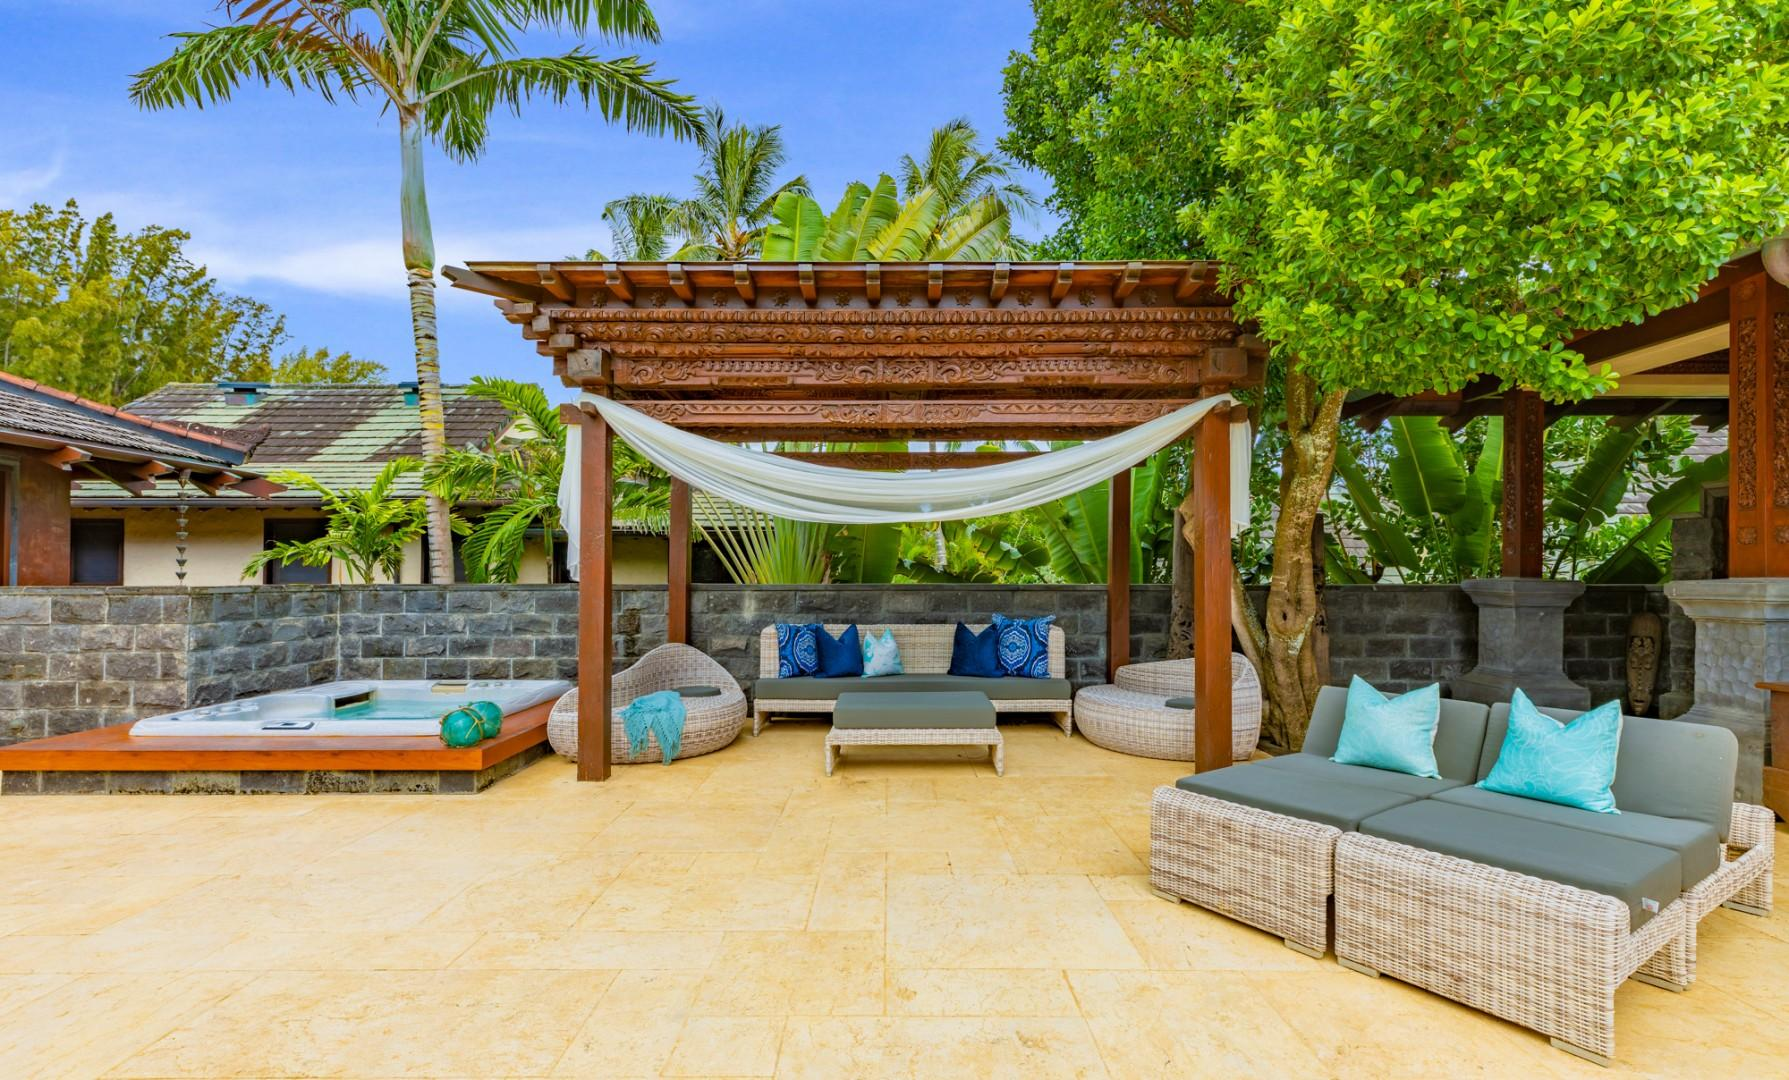 Lounge in style by the pool